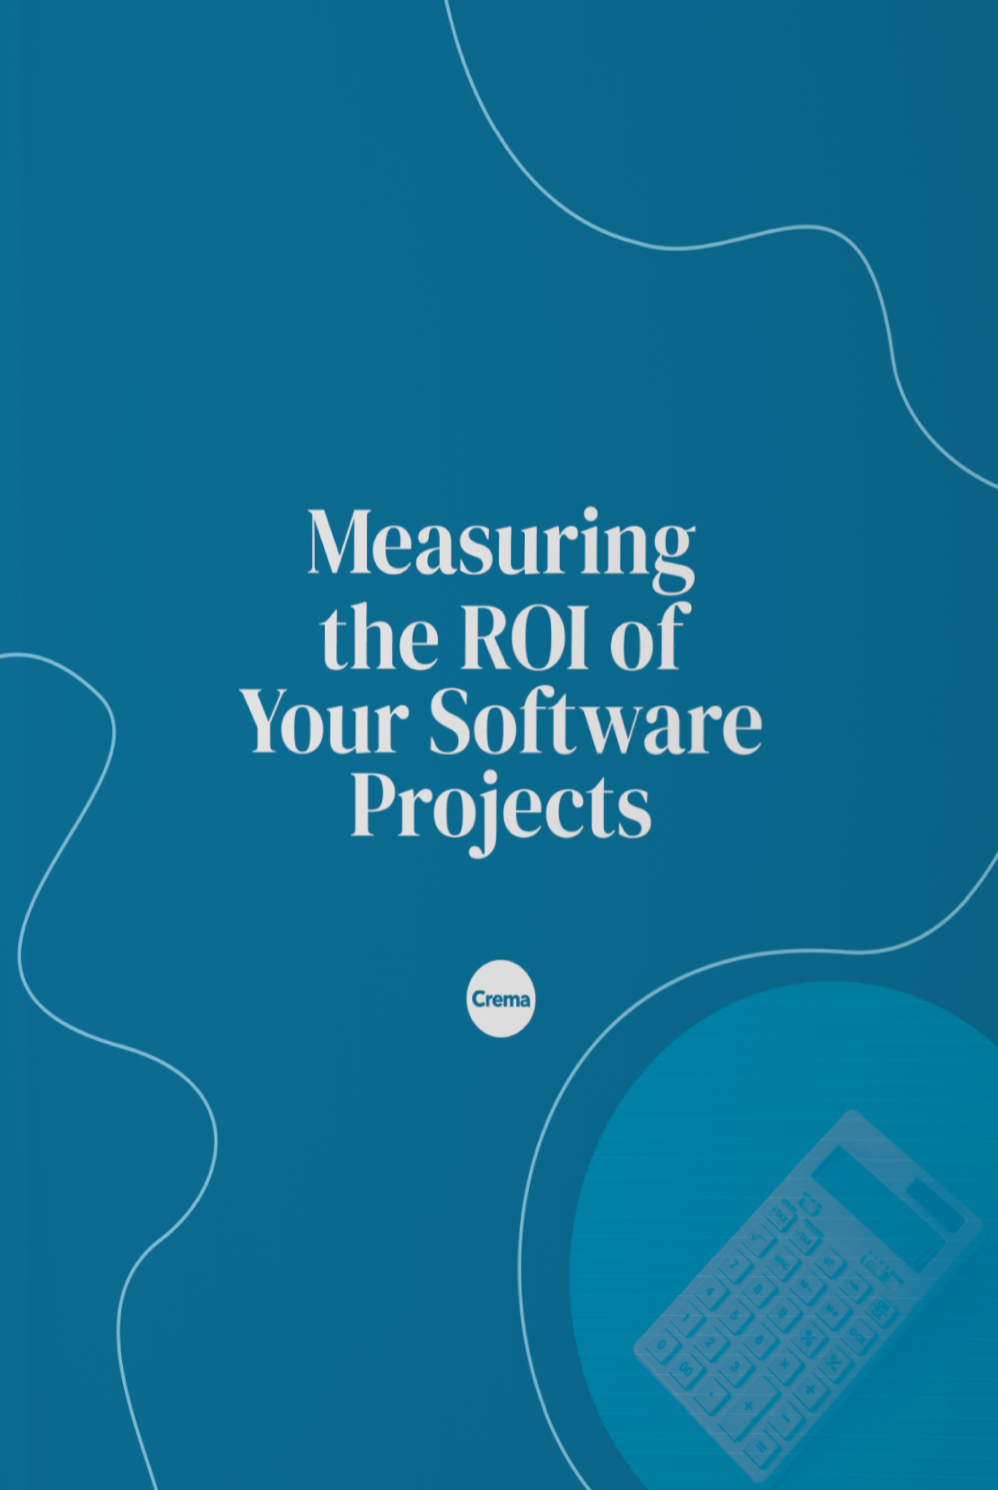 measuring the ROI of your software projects - ebook image